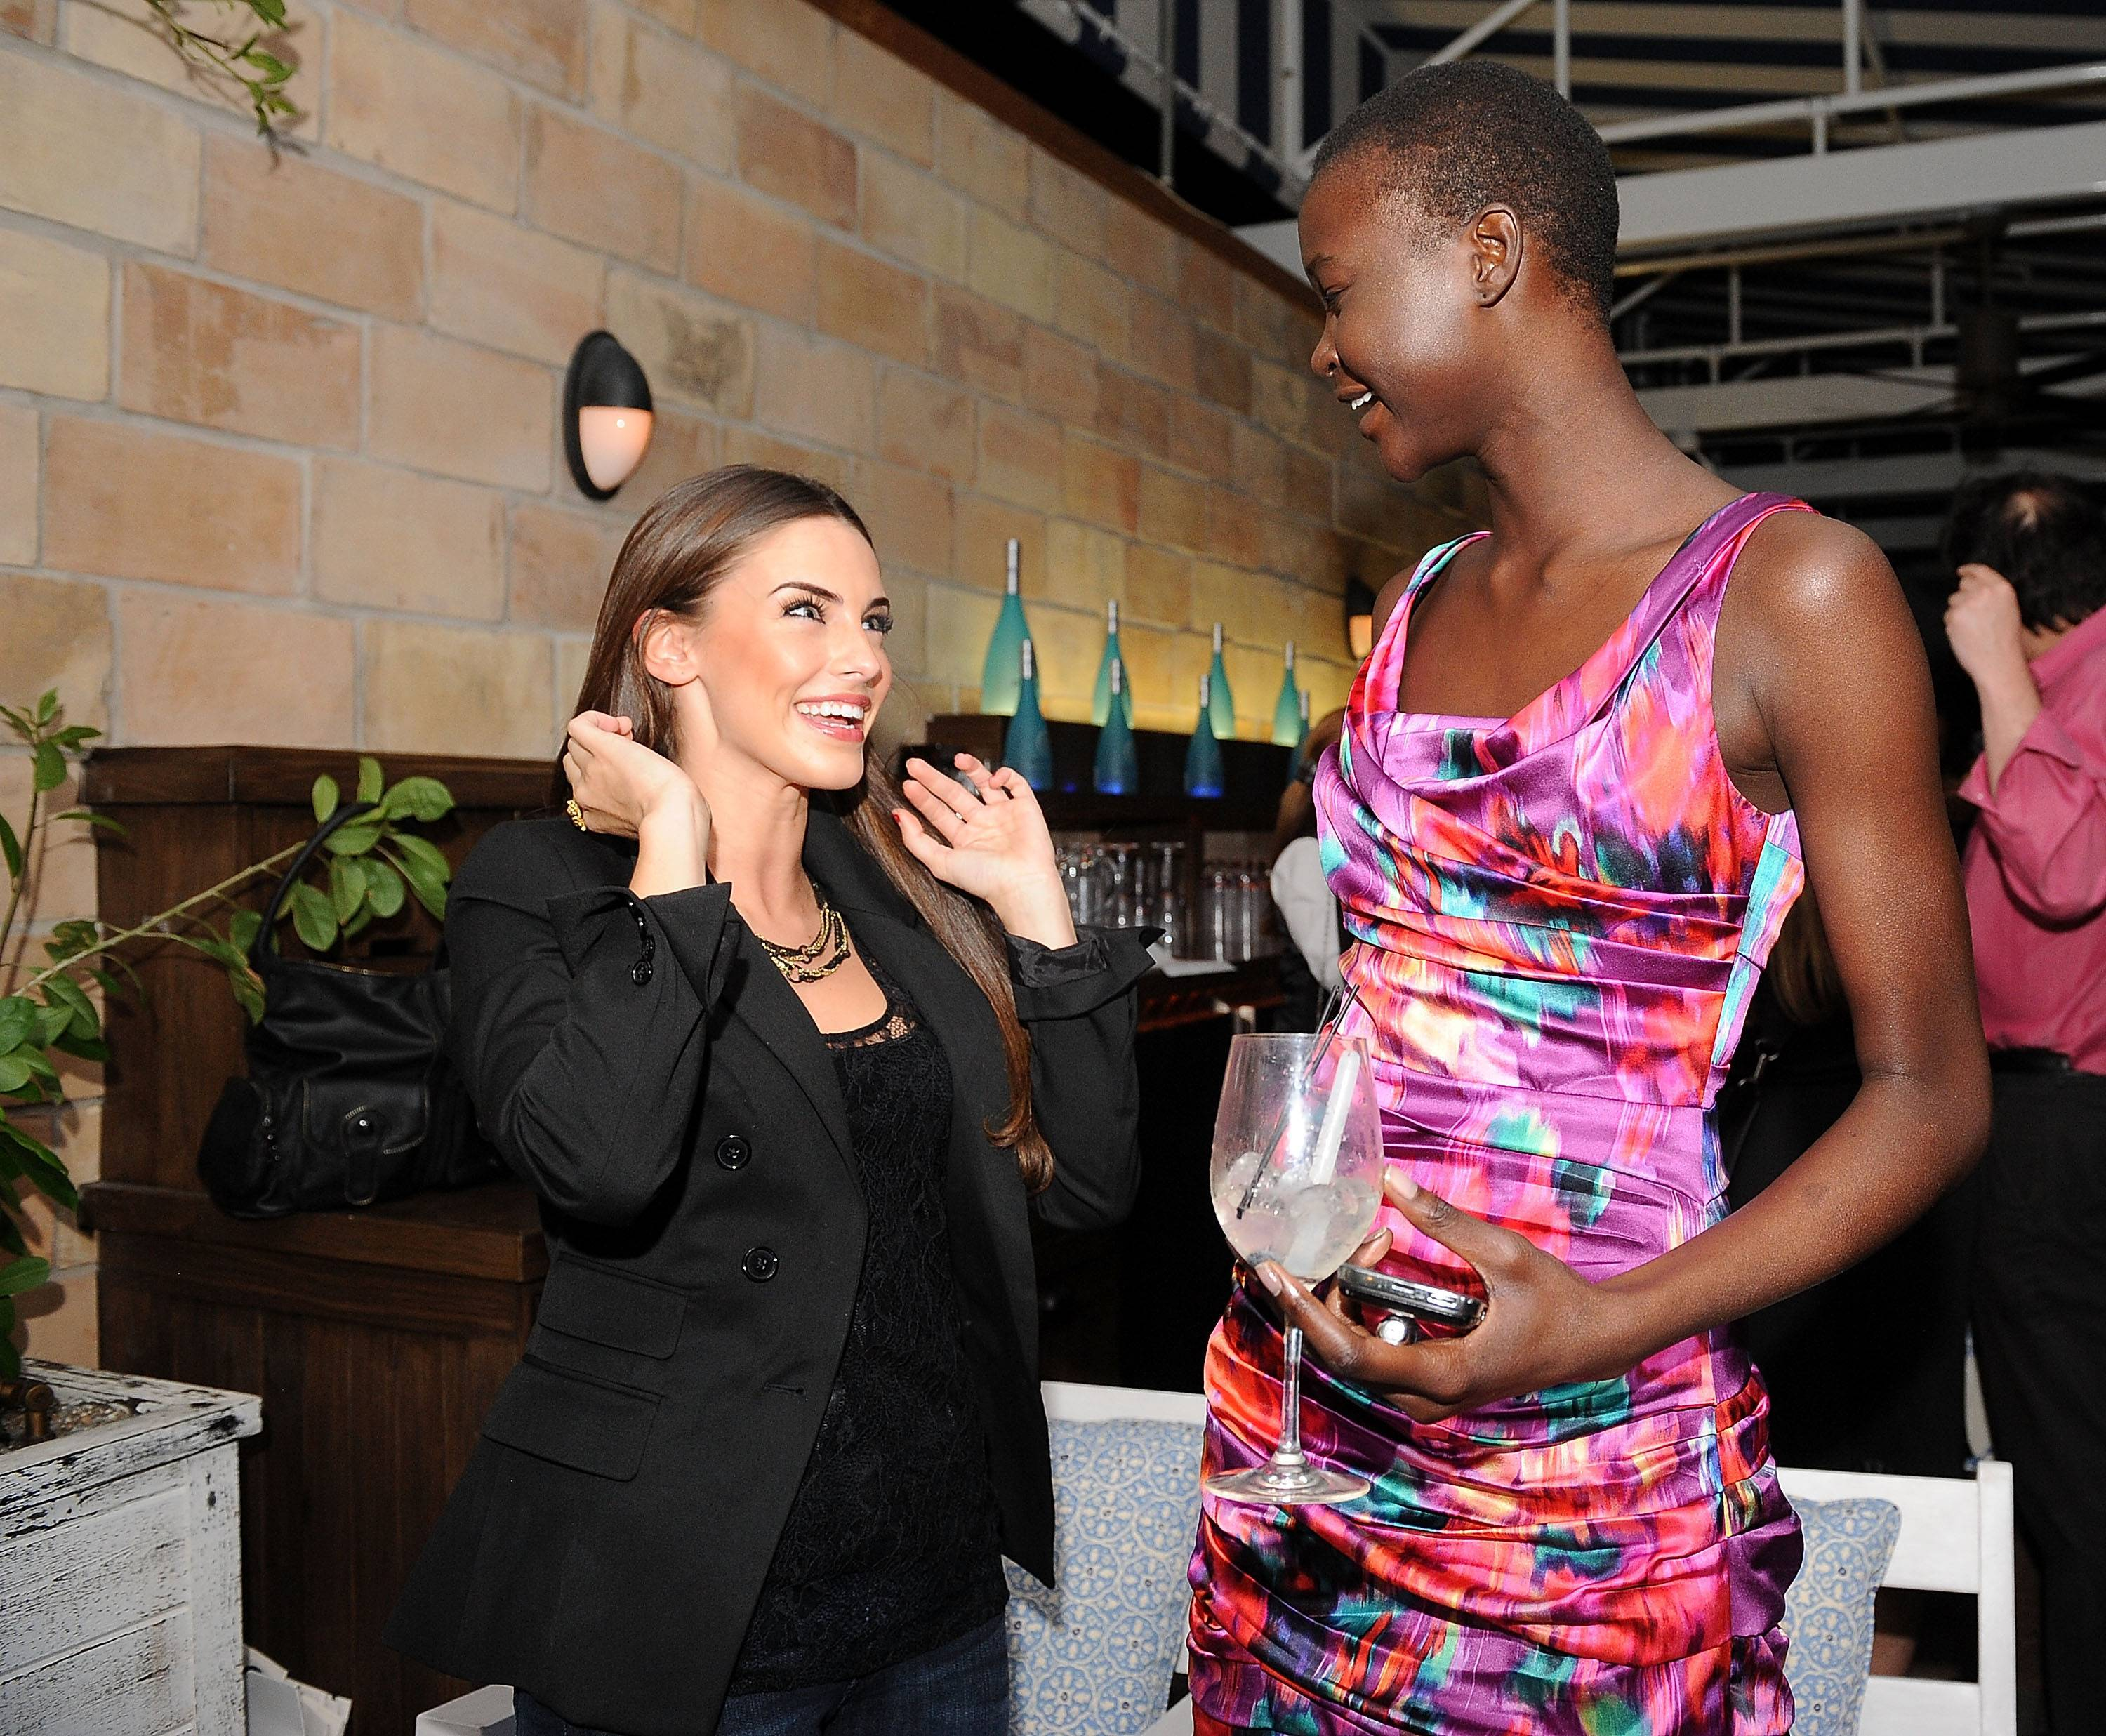 Actress Jessica Lowndes and Ataui Deng (R) attend the Express Spring 2011 Runway Show and After Party at the Soho Beach House on November 20, 2010 in Miami Beach, Florida.